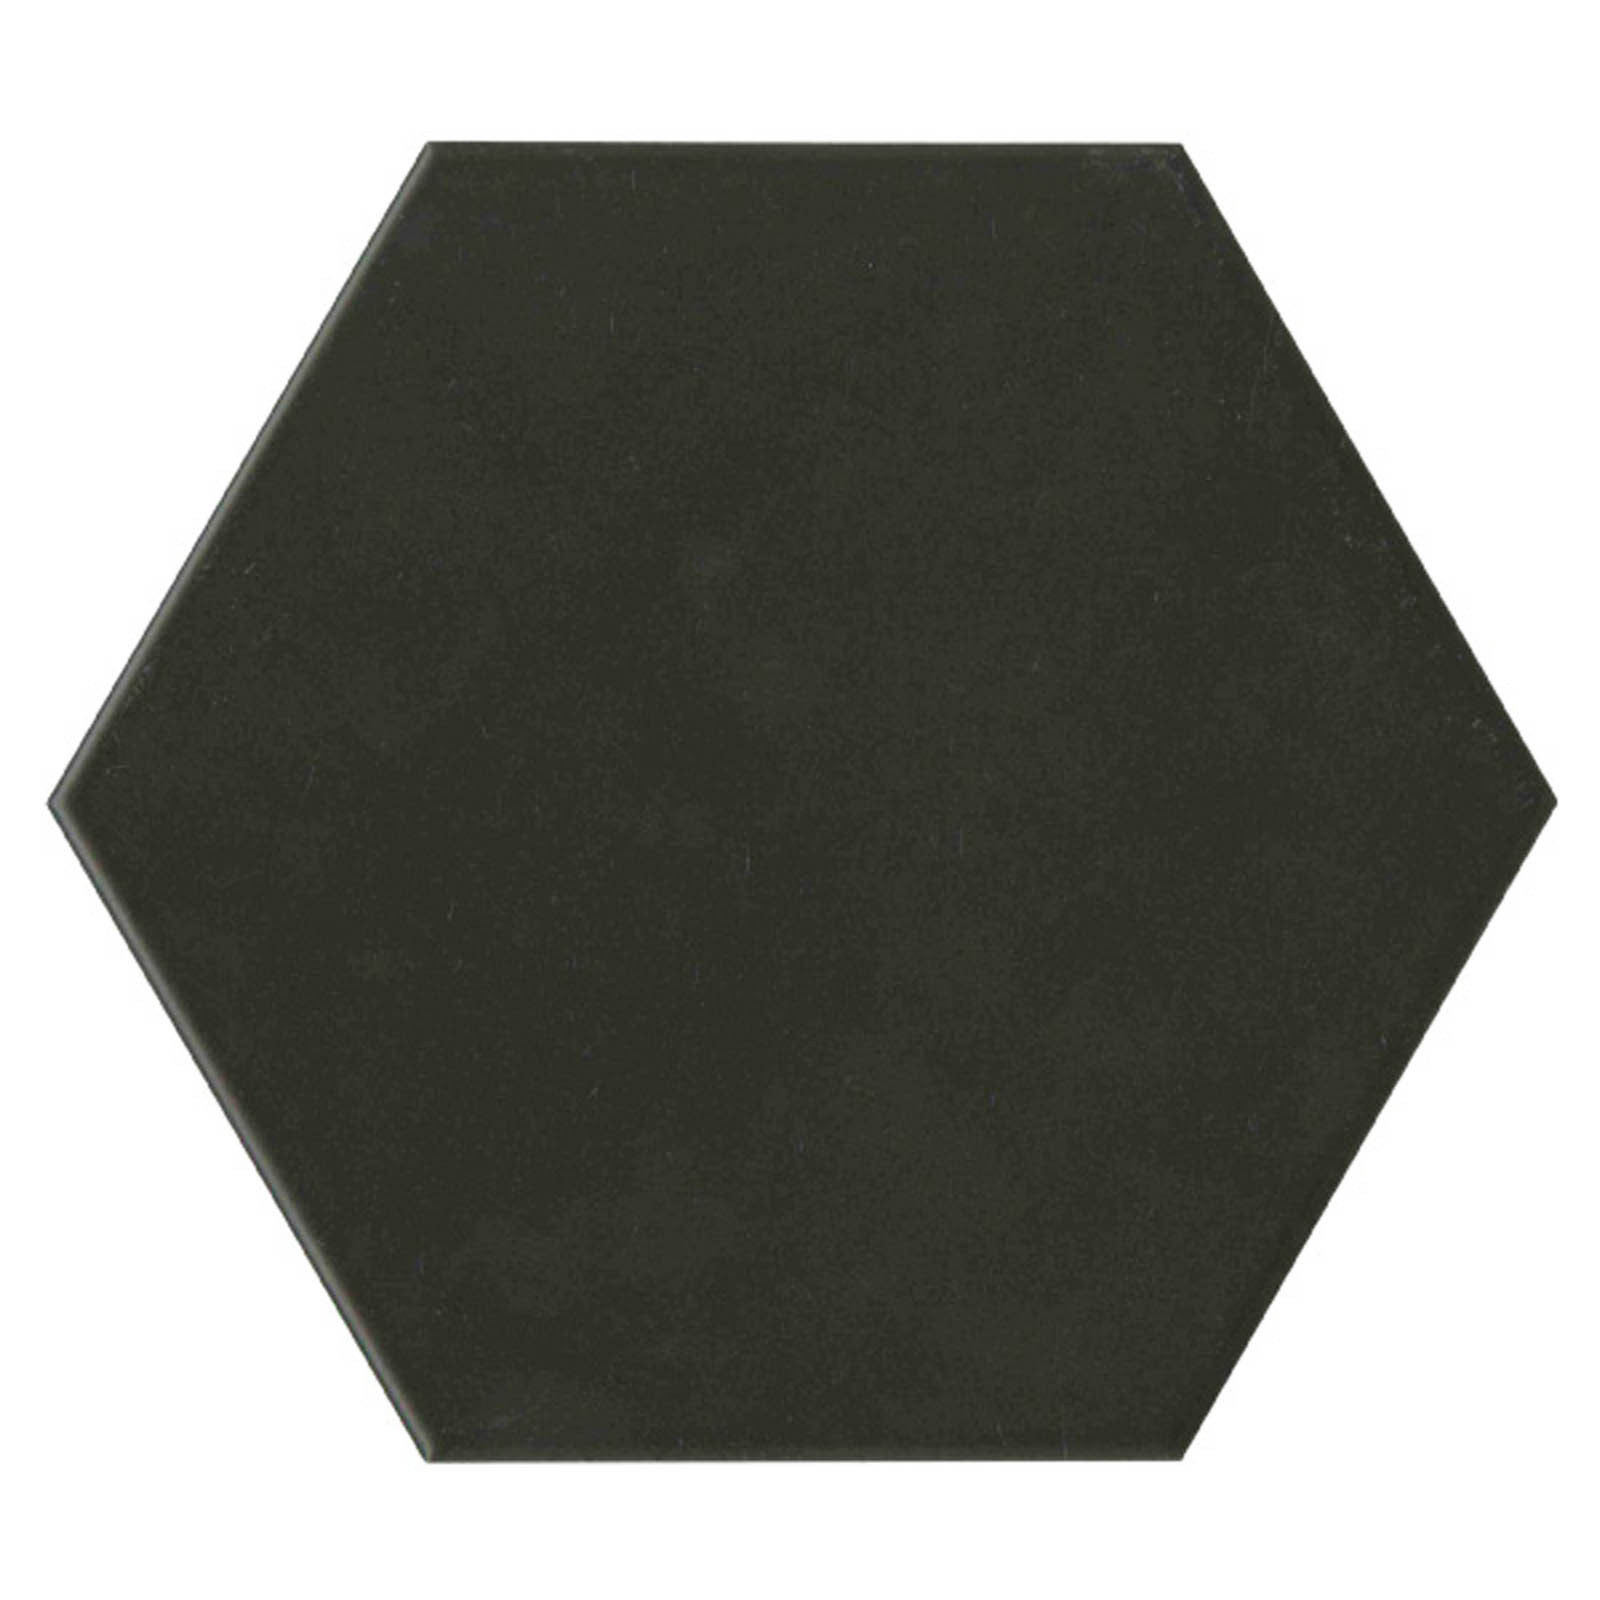 Keraaminen laatta Qualitystone Hexagon Black, 175 x 175 mm